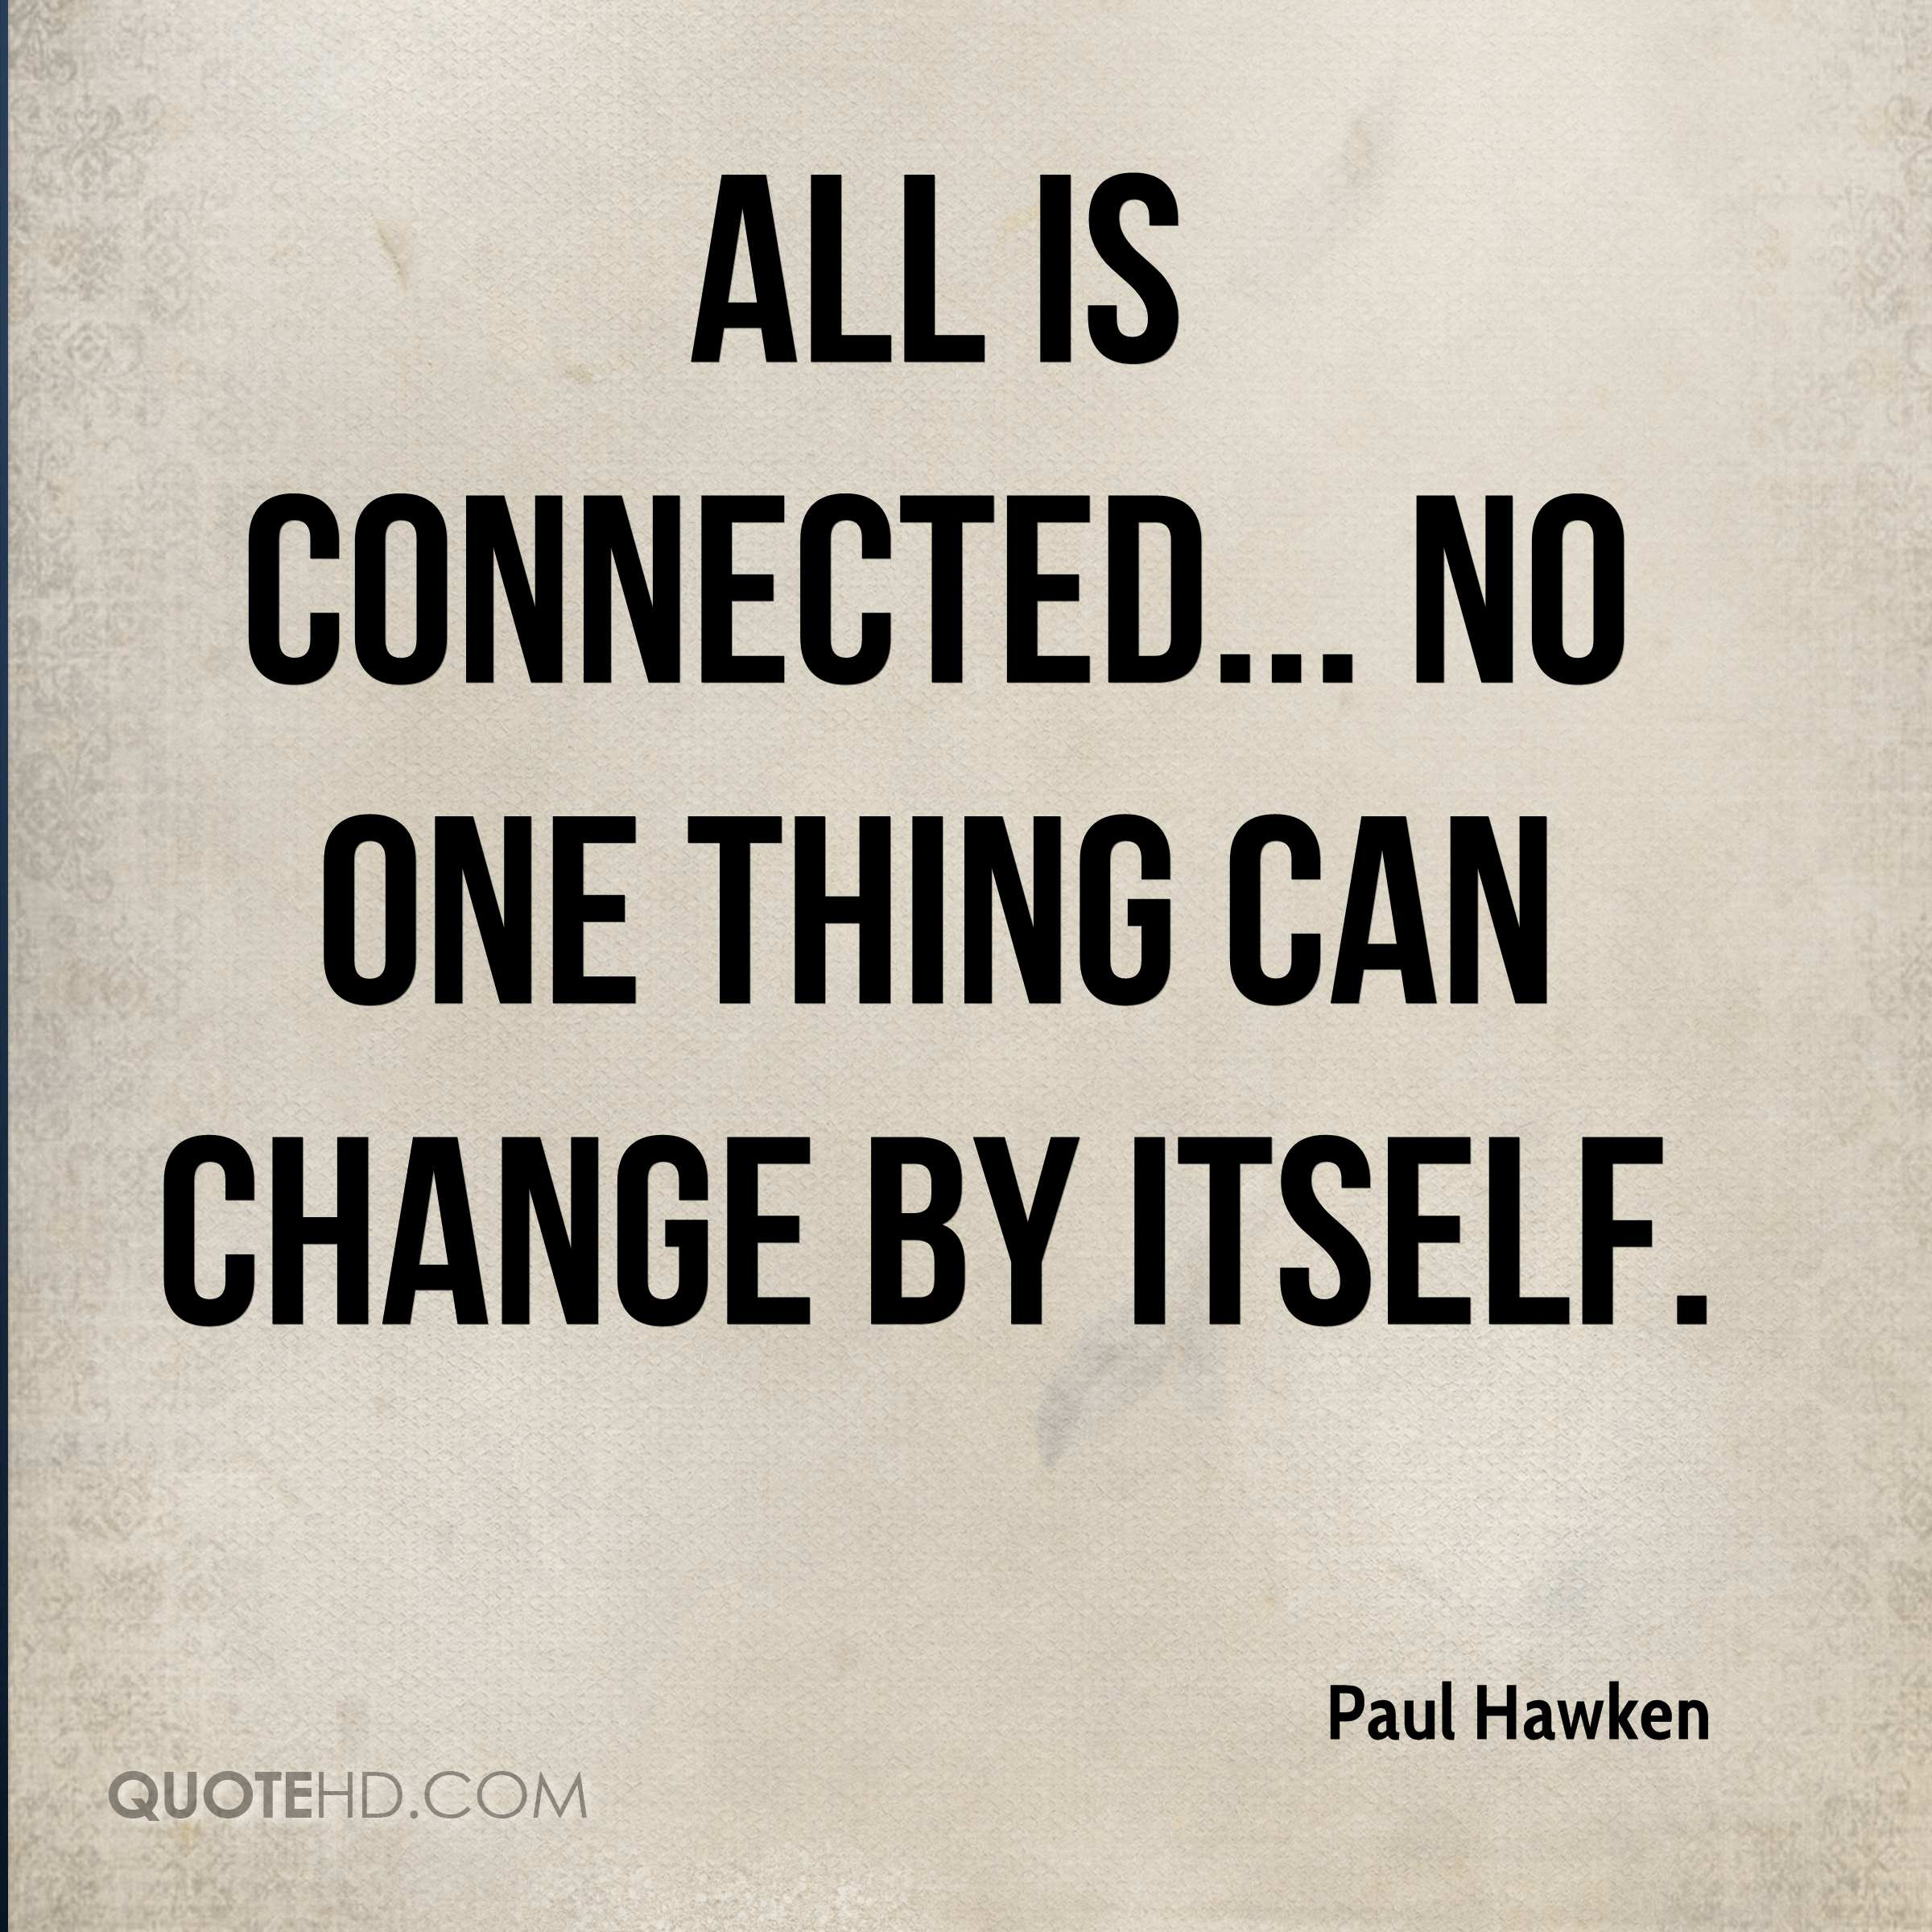 paul-hawken-paul-hawken-all-is-connected